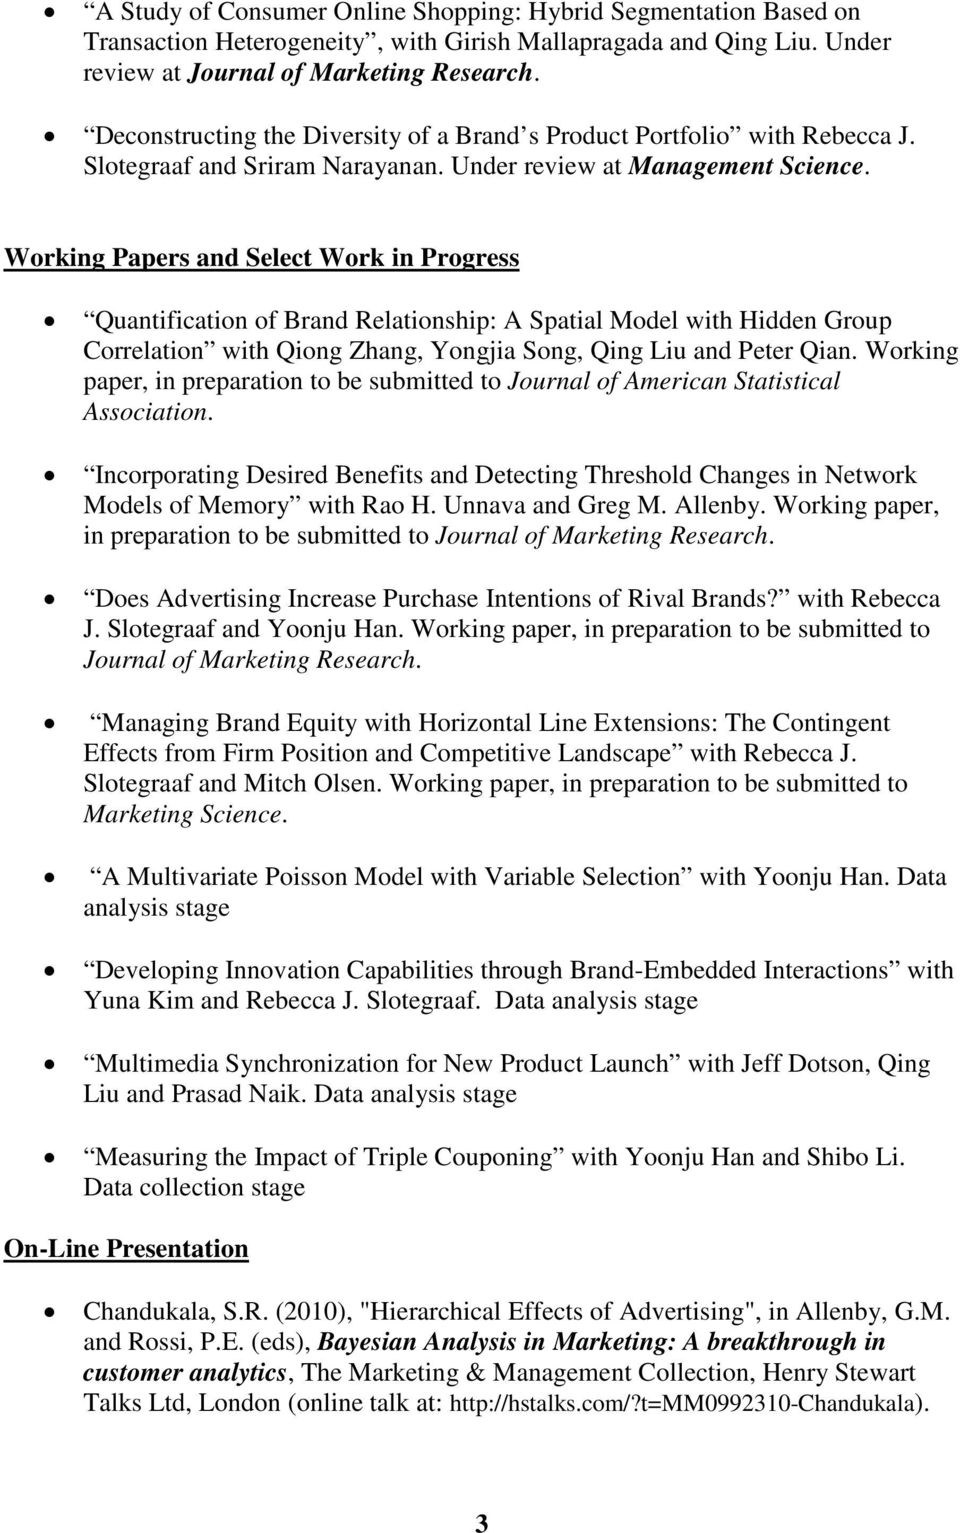 Working Papers and Select Work in Progress Quantification of Brand Relationship: A Spatial Model with Hidden Group Correlation with Qiong Zhang, Yongjia Song, Qing Liu and Peter Qian.